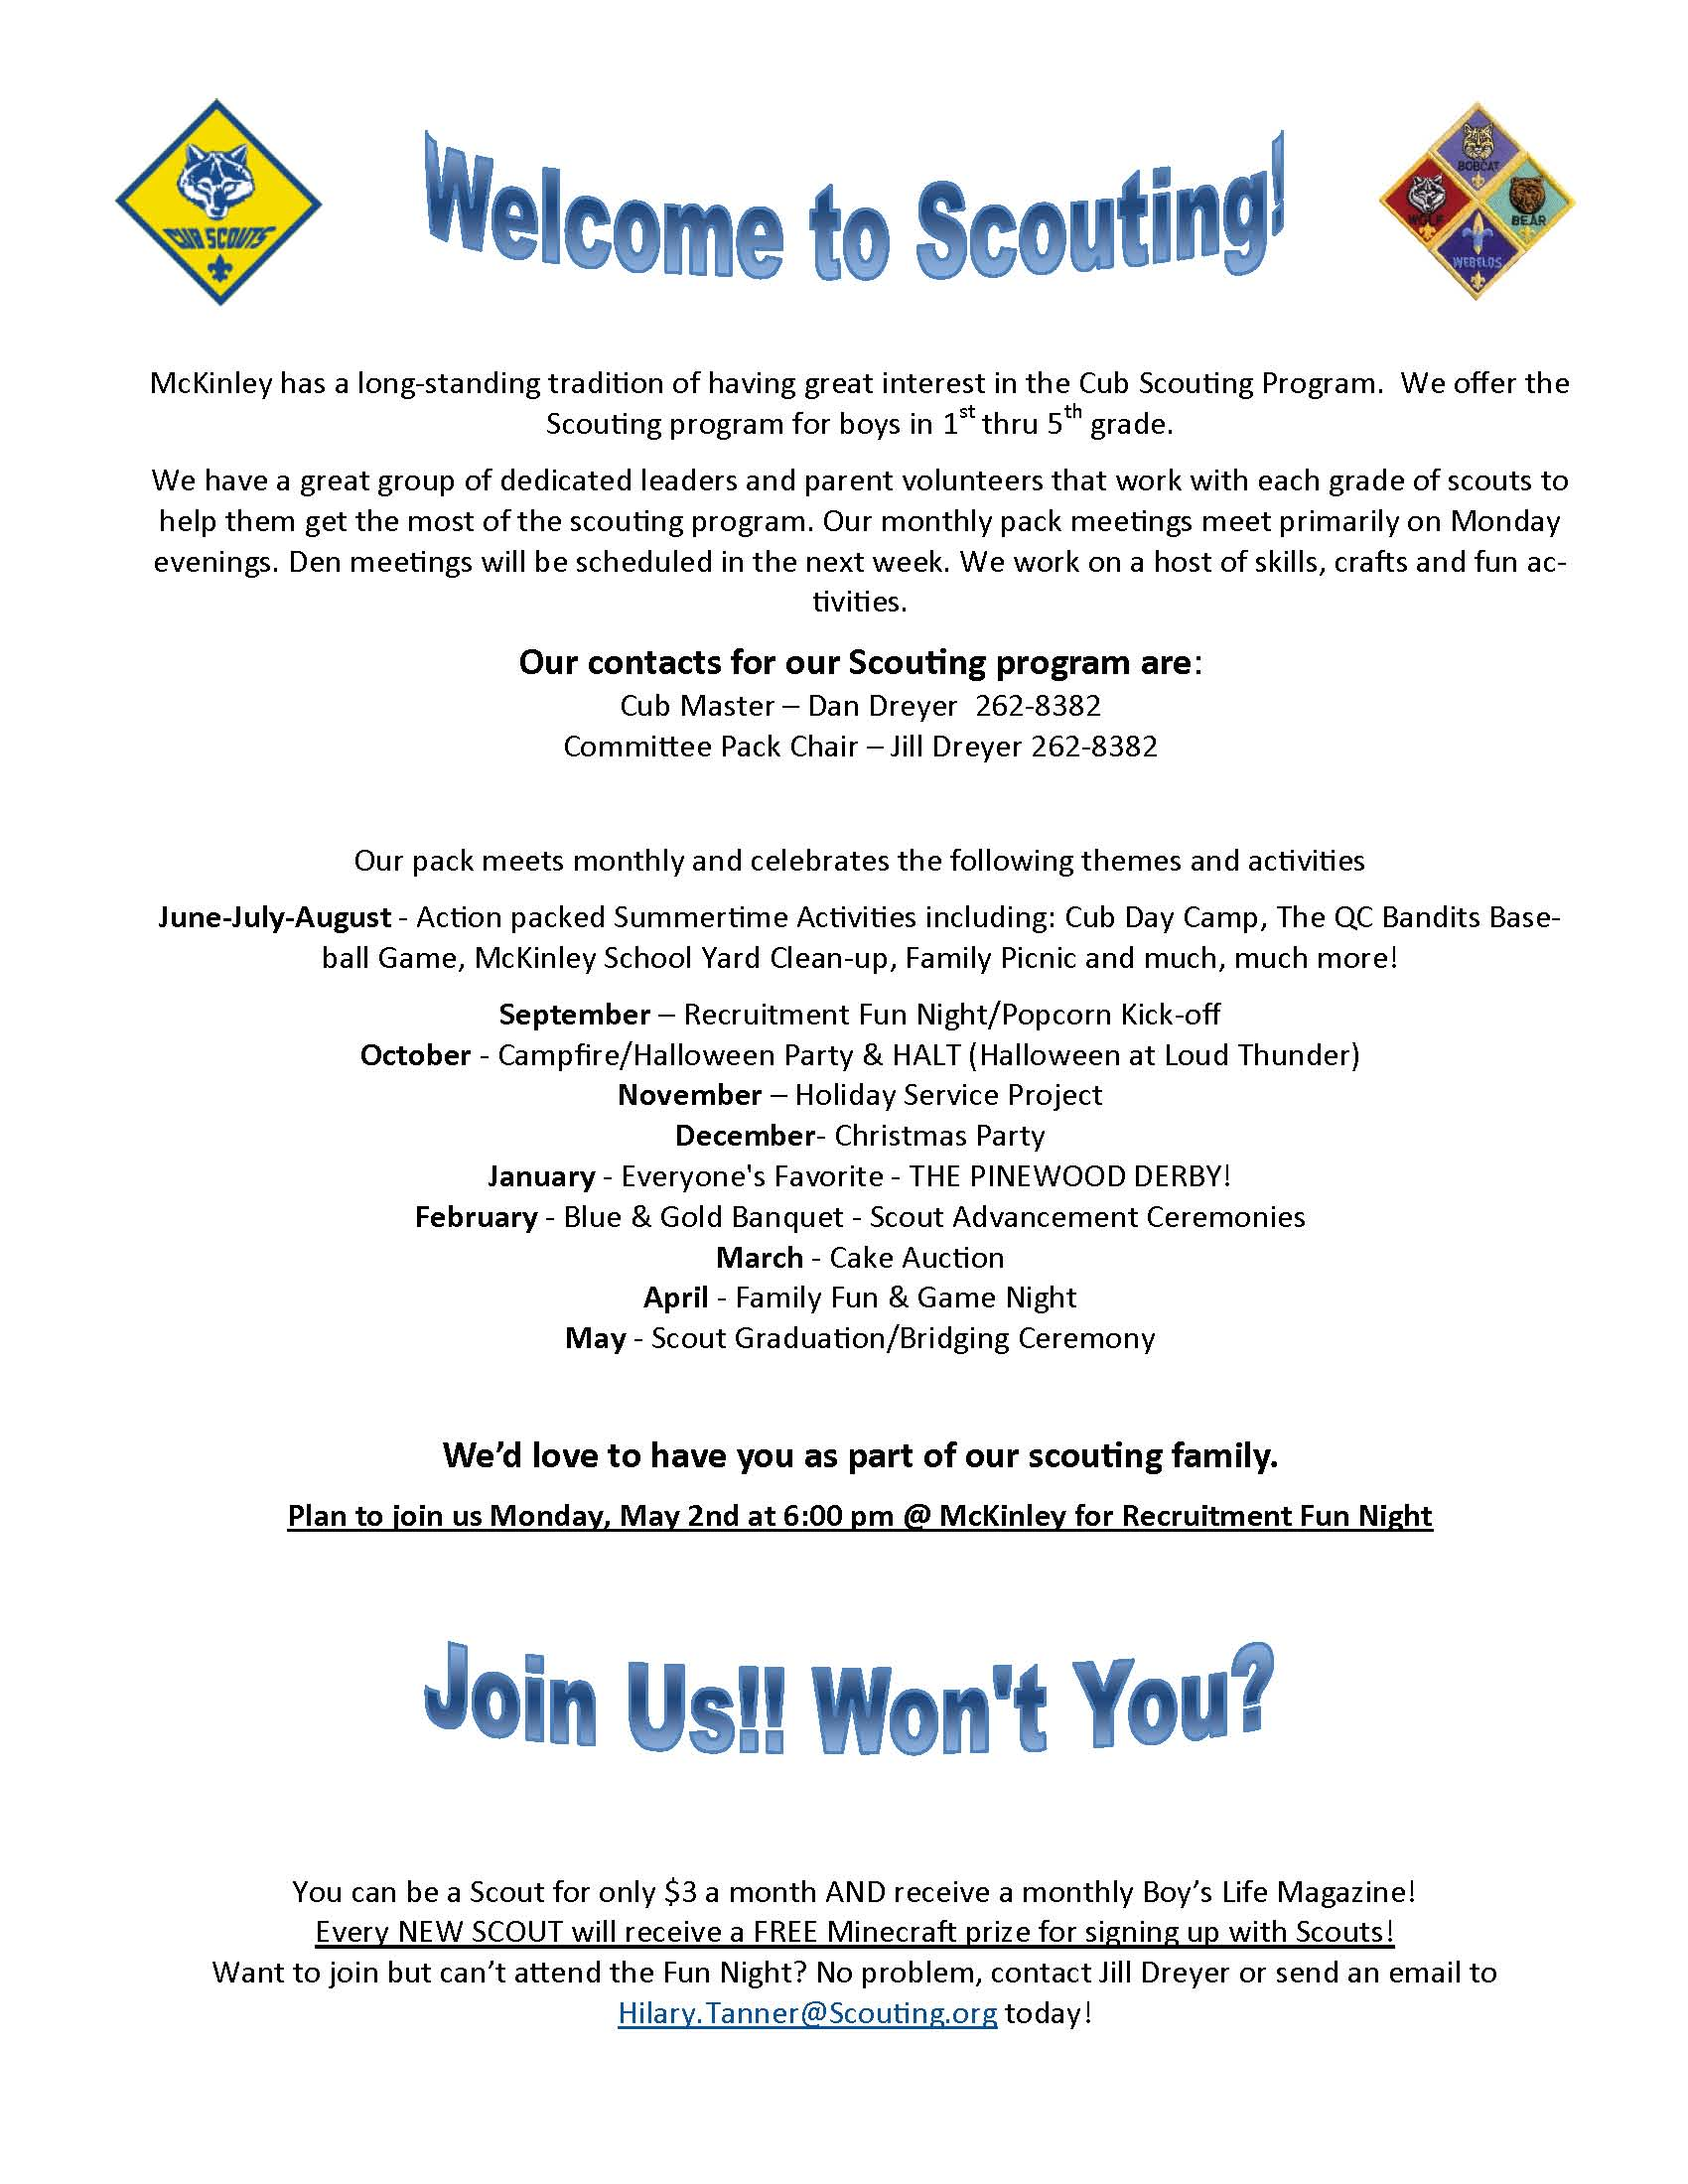 McKinley Cub Scouts Invites Kindergarteners to Join Scouts ...